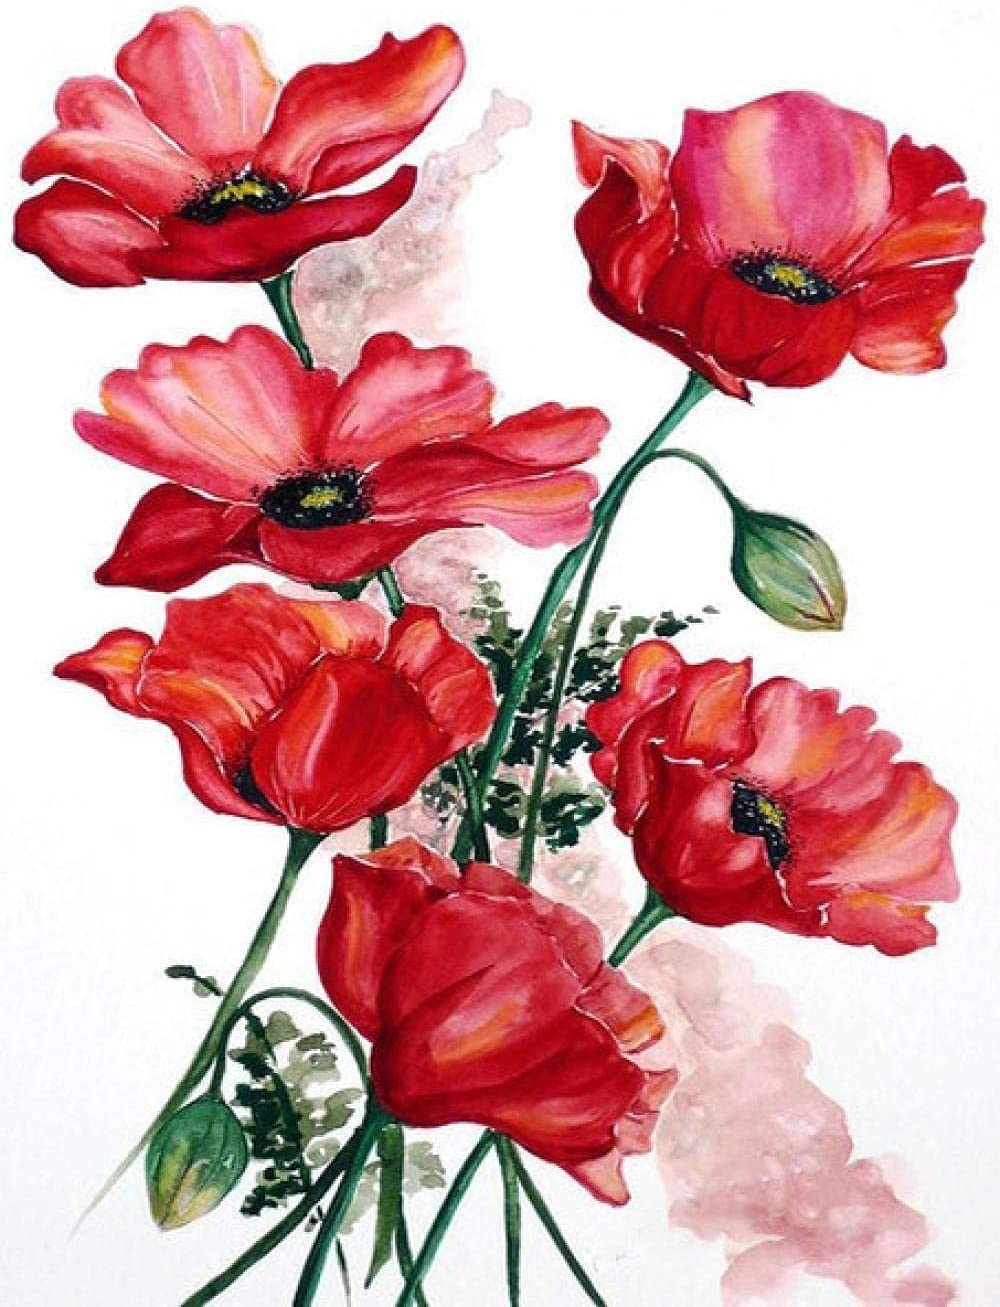 HRKDHBS DIY Oil Paint by Number Painting Flower Kit Ranking TOP11 Numbe Memphis Mall Red